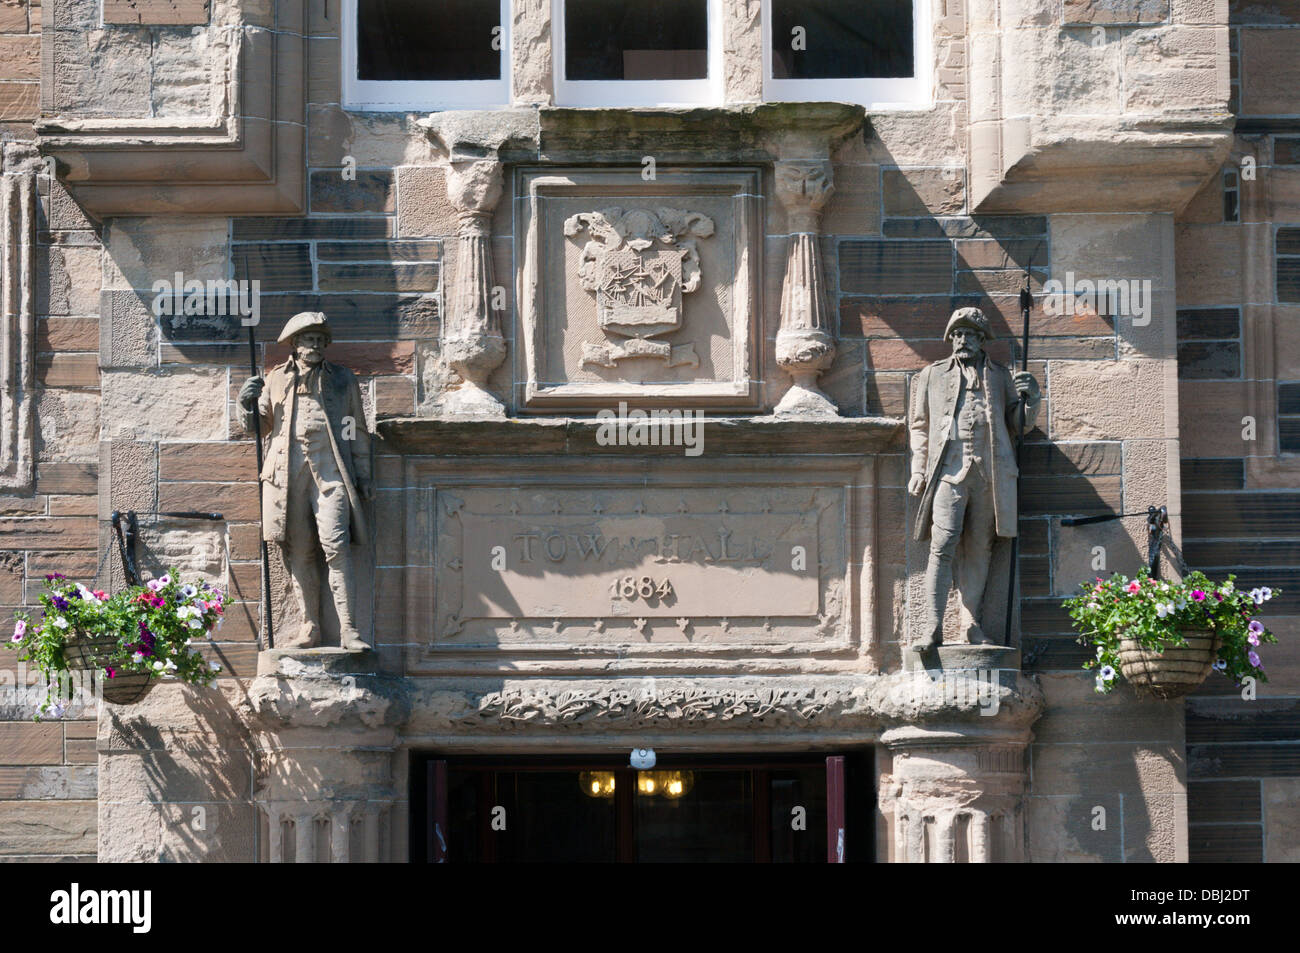 Carving over the entrance to Kirkwall Town Hall, Orkney. - Stock Image